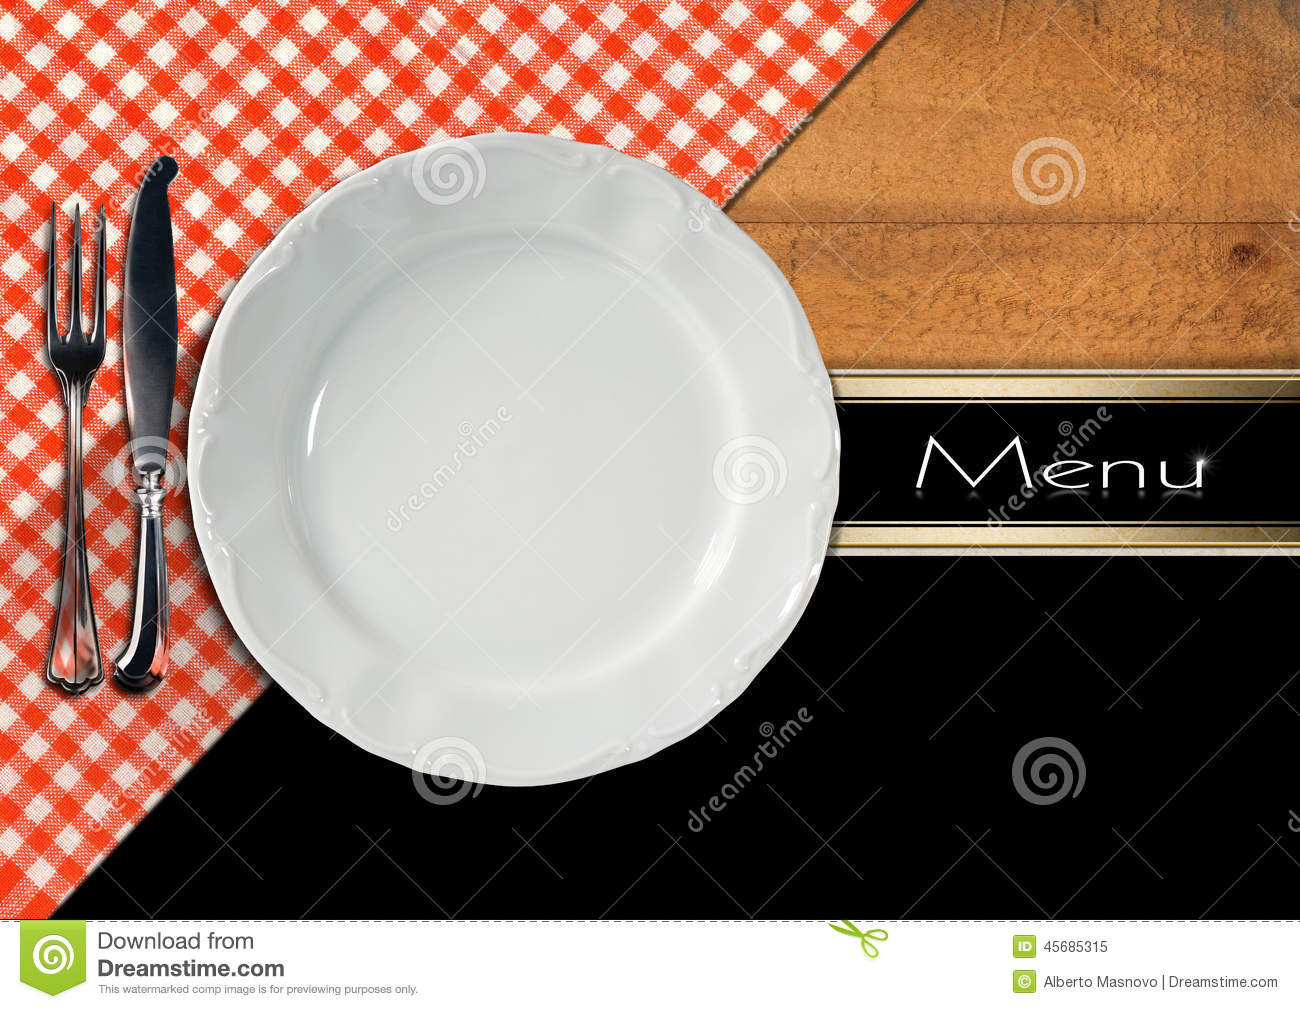 Restaurant Menu Design Stock Illustration Image 45685315 : restaurant menu design empty white plate silver cutlery wooden background red white tablecloth 45685315 from dreamstime.com size 1300 x 1009 jpeg 227kB